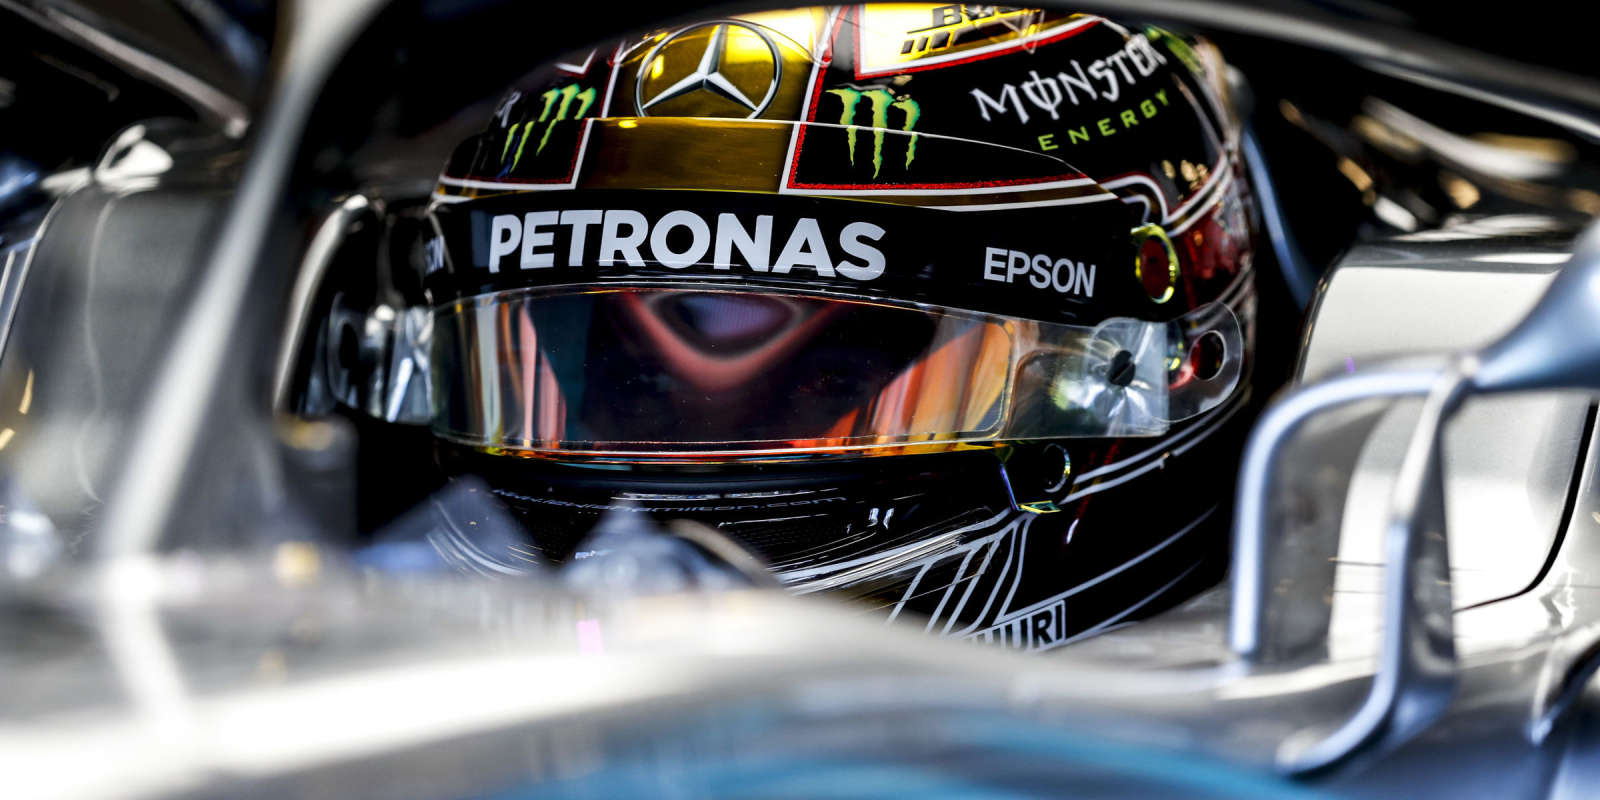 Images from the 2018 Abu Dhabi Grand Prix